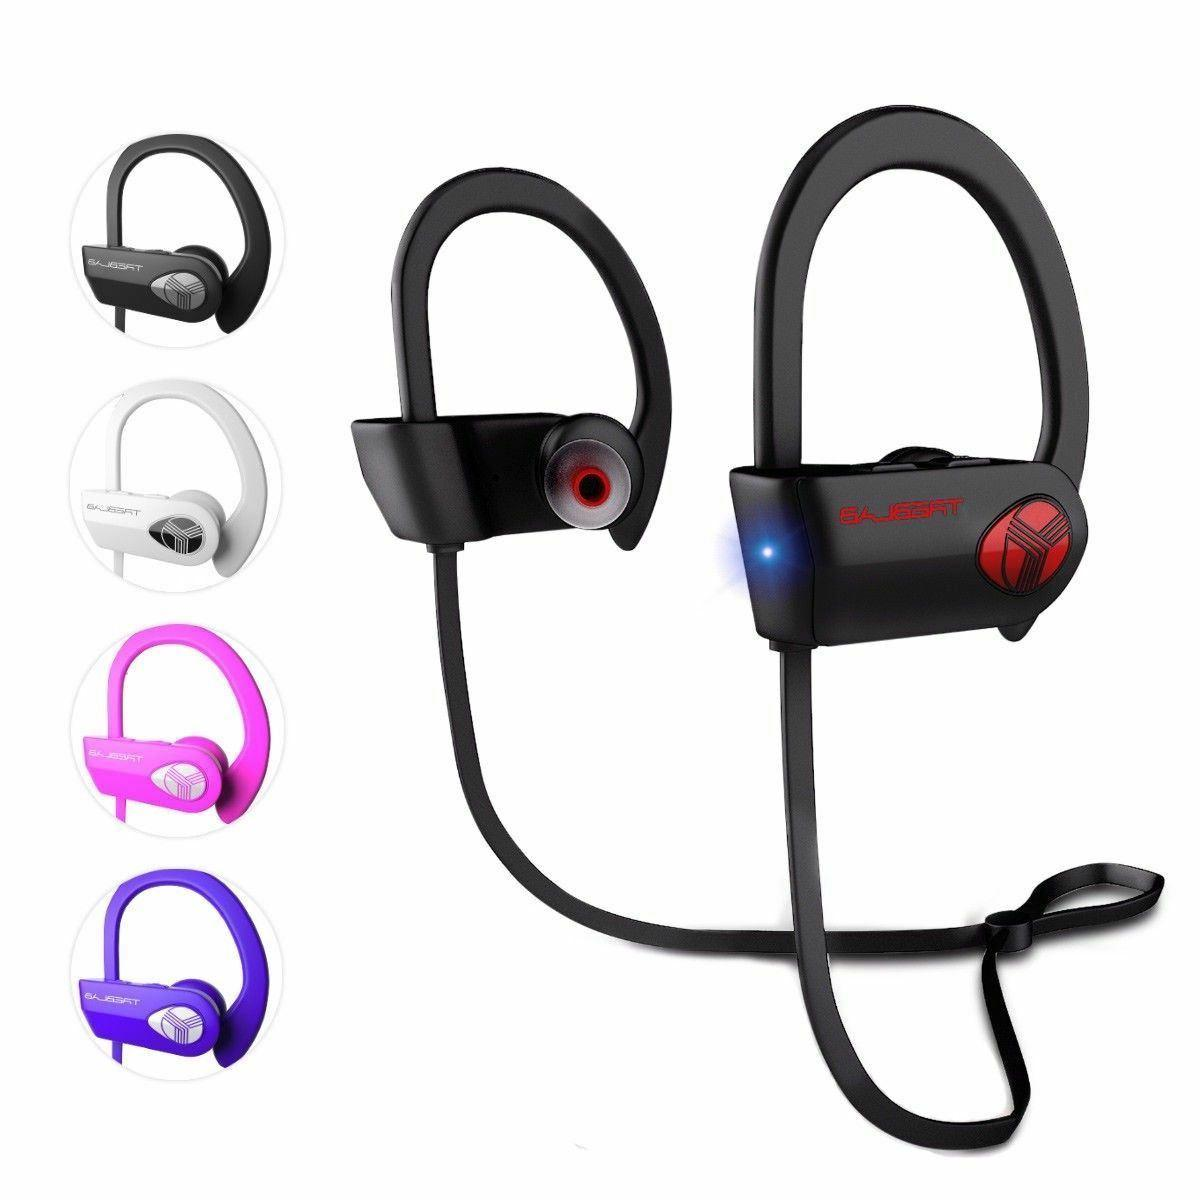 xr500 bluetooth earbuds best wireless headphones running